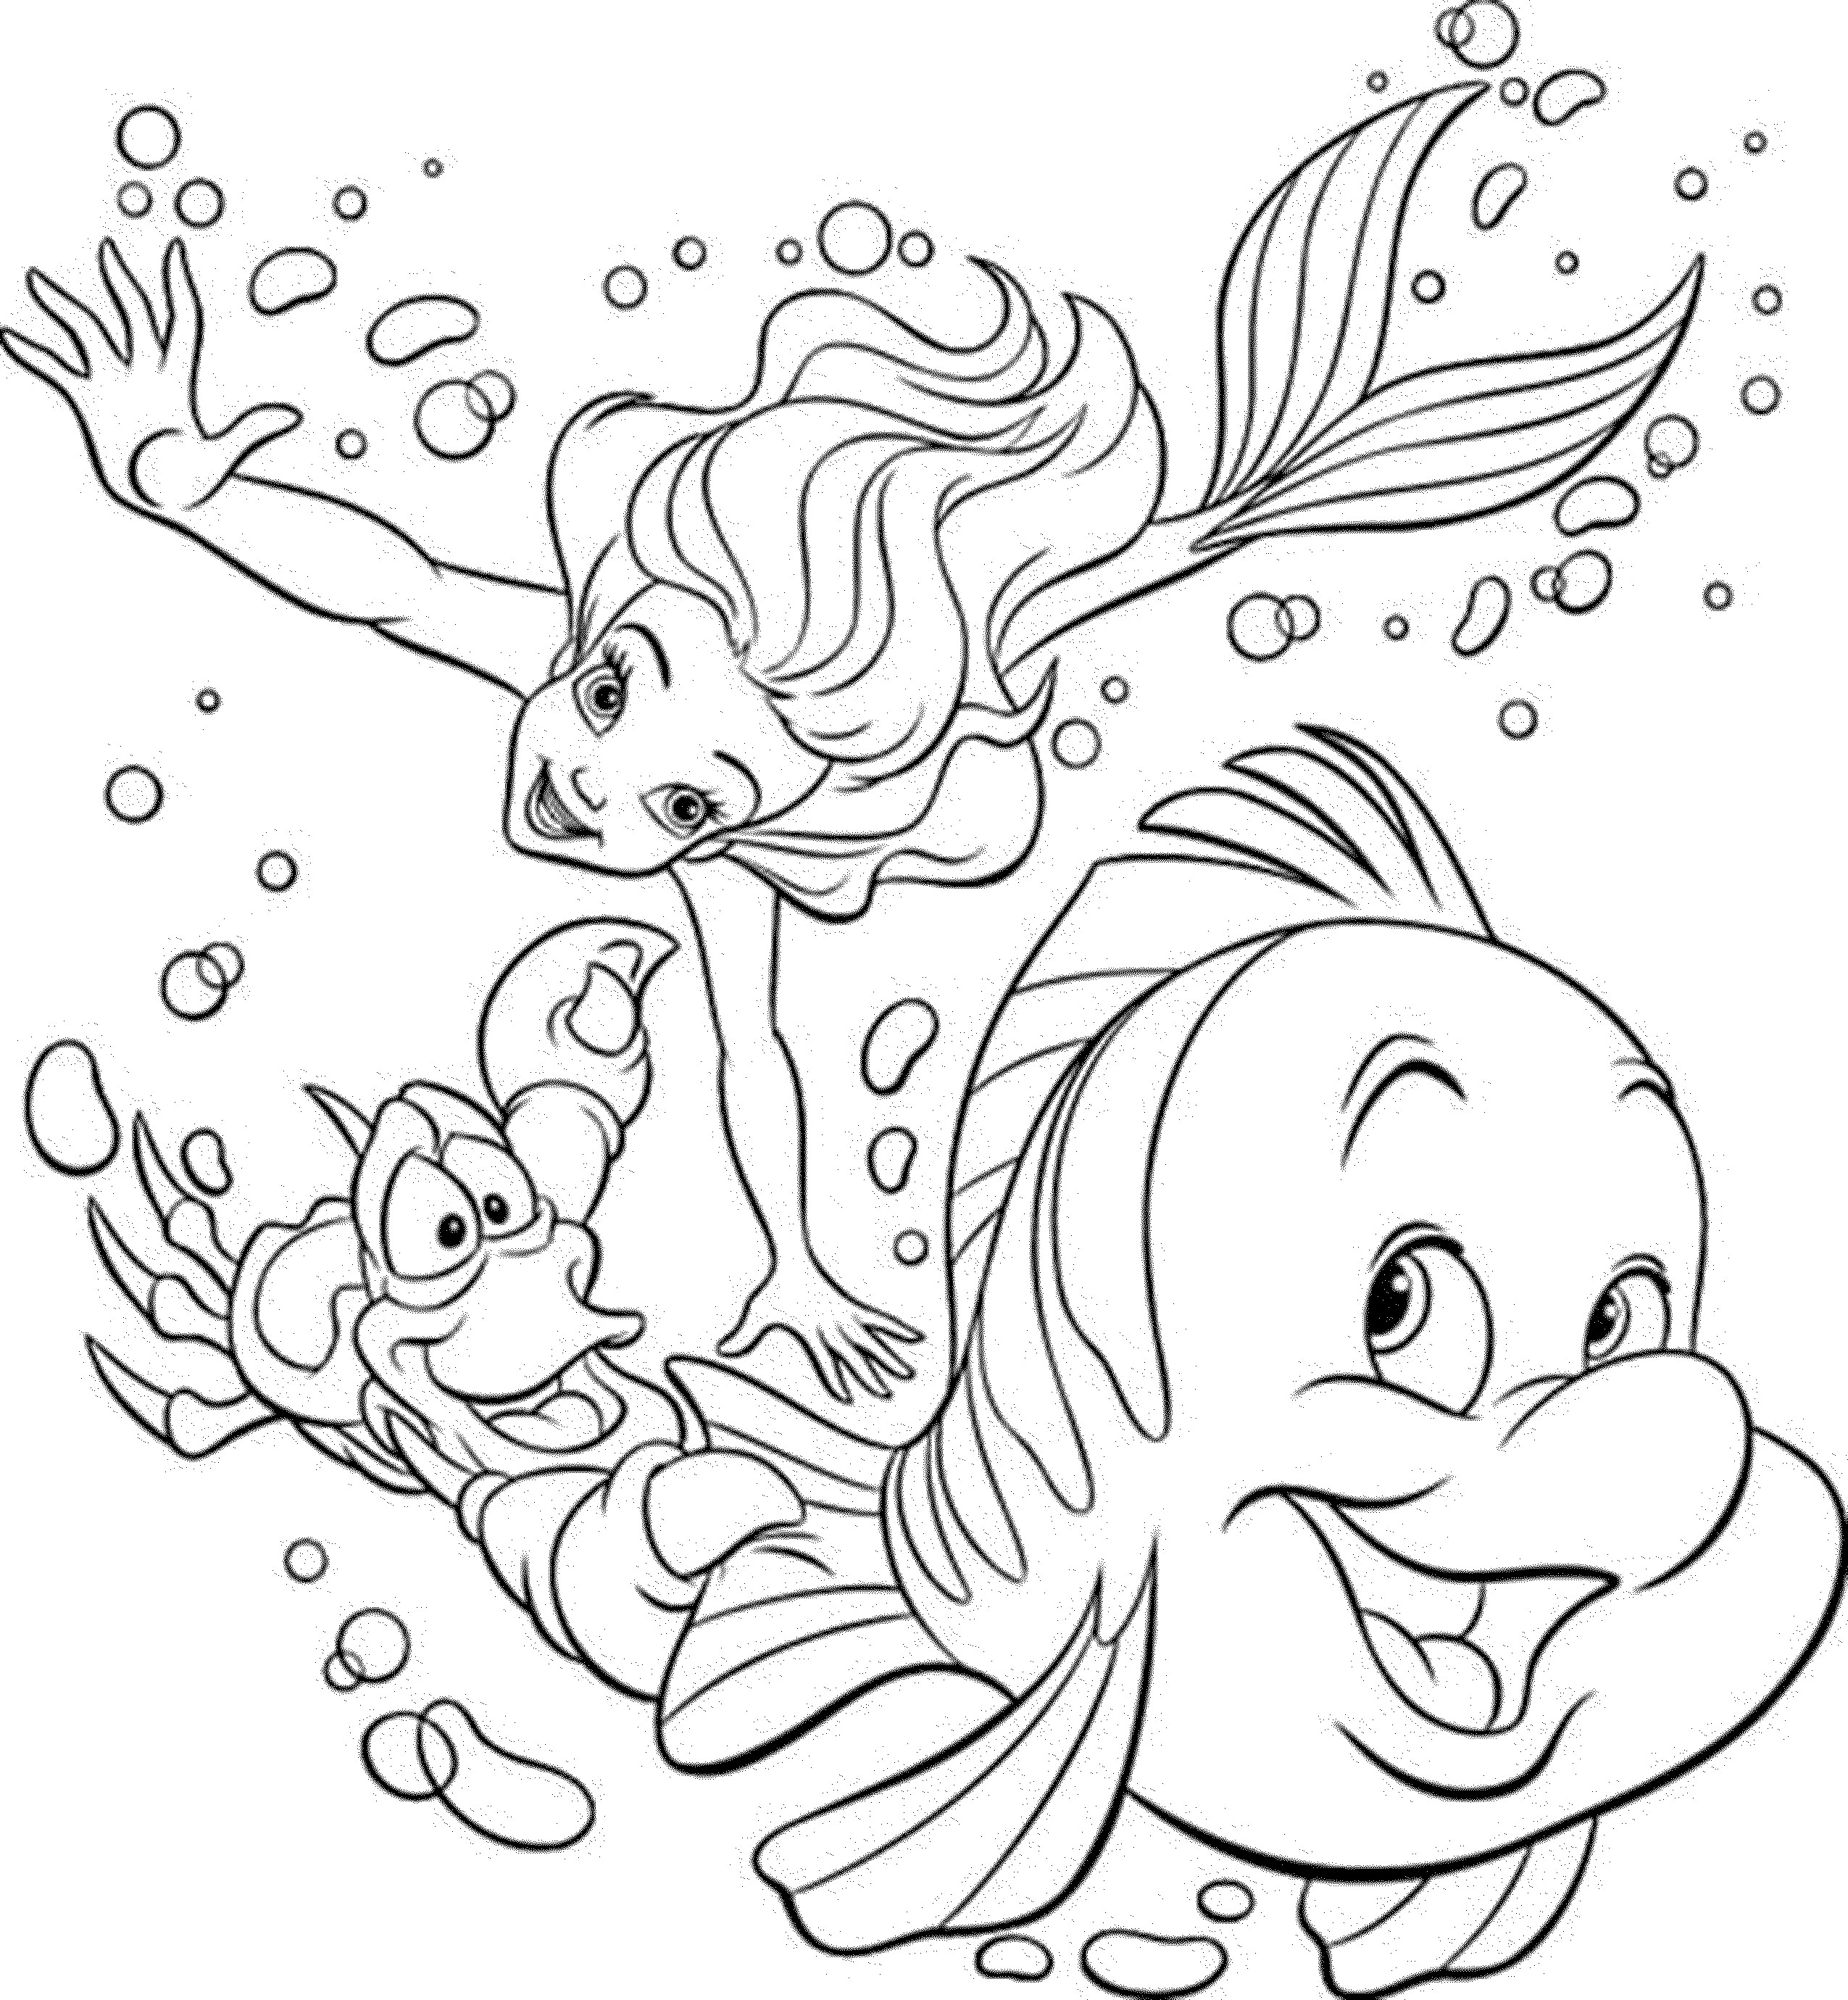 Hilarious Coloring Pages at GetDrawings.com   Free for ...